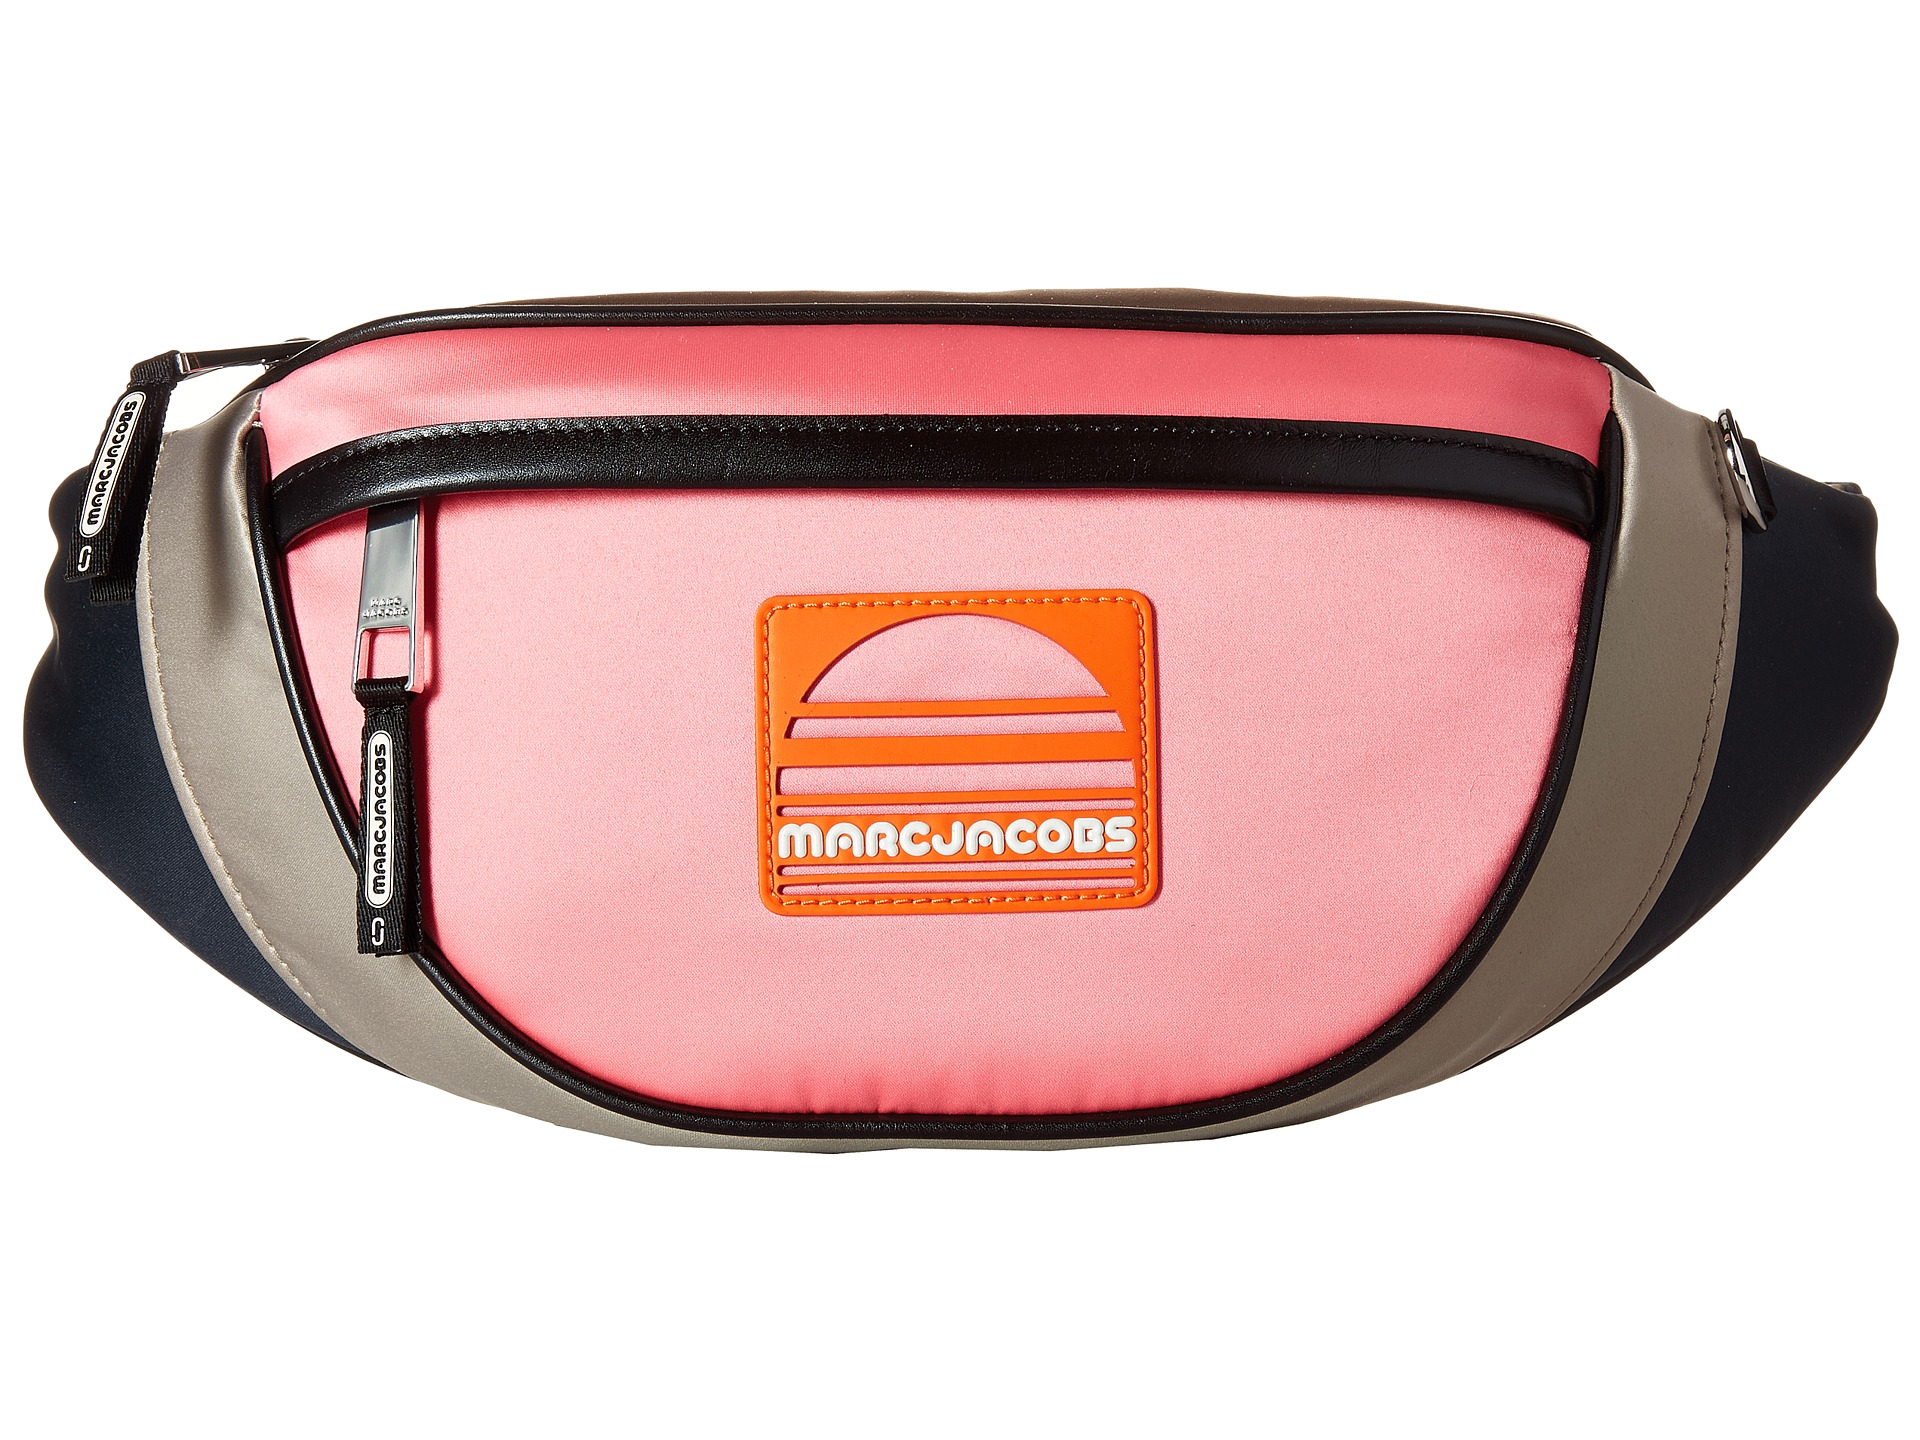 Marc Jacobs - Sport Fanny Pack $350 - AT YOOX.COM